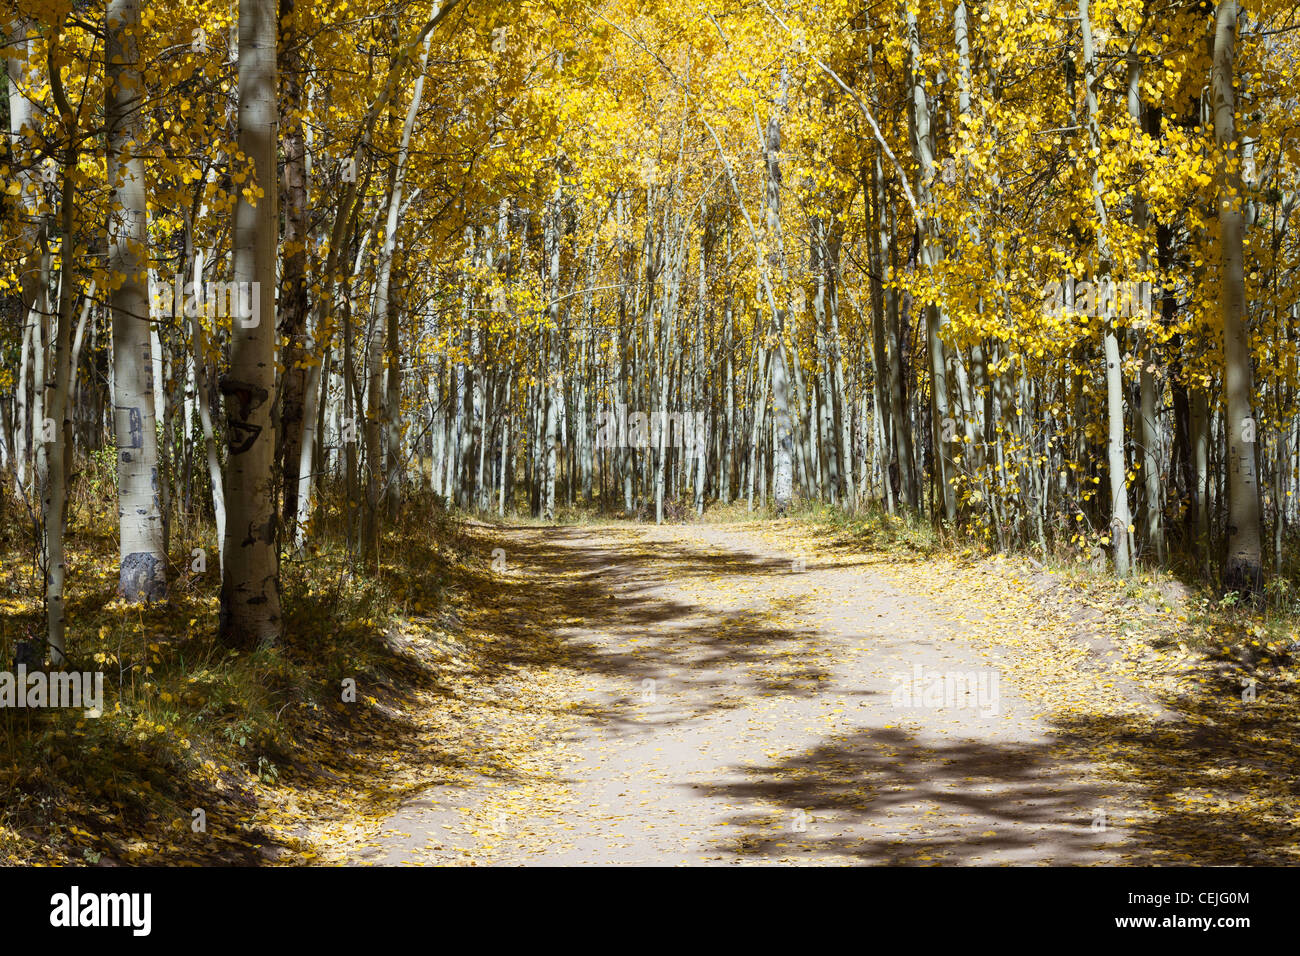 Dirt trail through a golden Aspen forest along the Continental Divide in the Colorado Rocky Mountains. - Stock Image